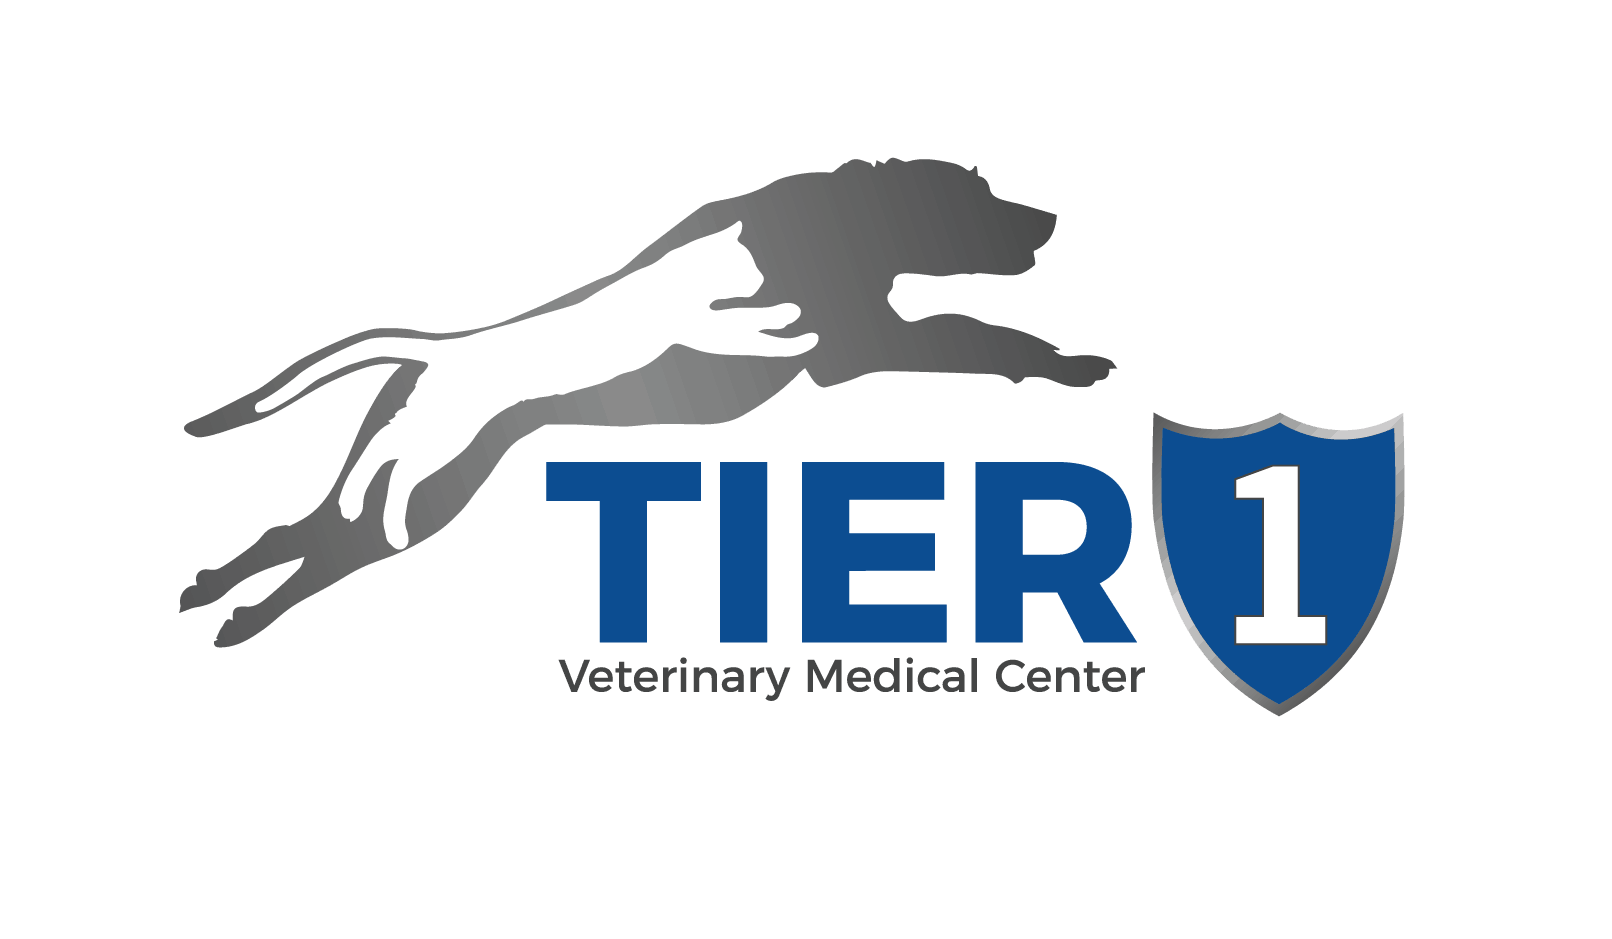 Tier 1 Veterinary Medical Center | Vet in Palmer, Alaska